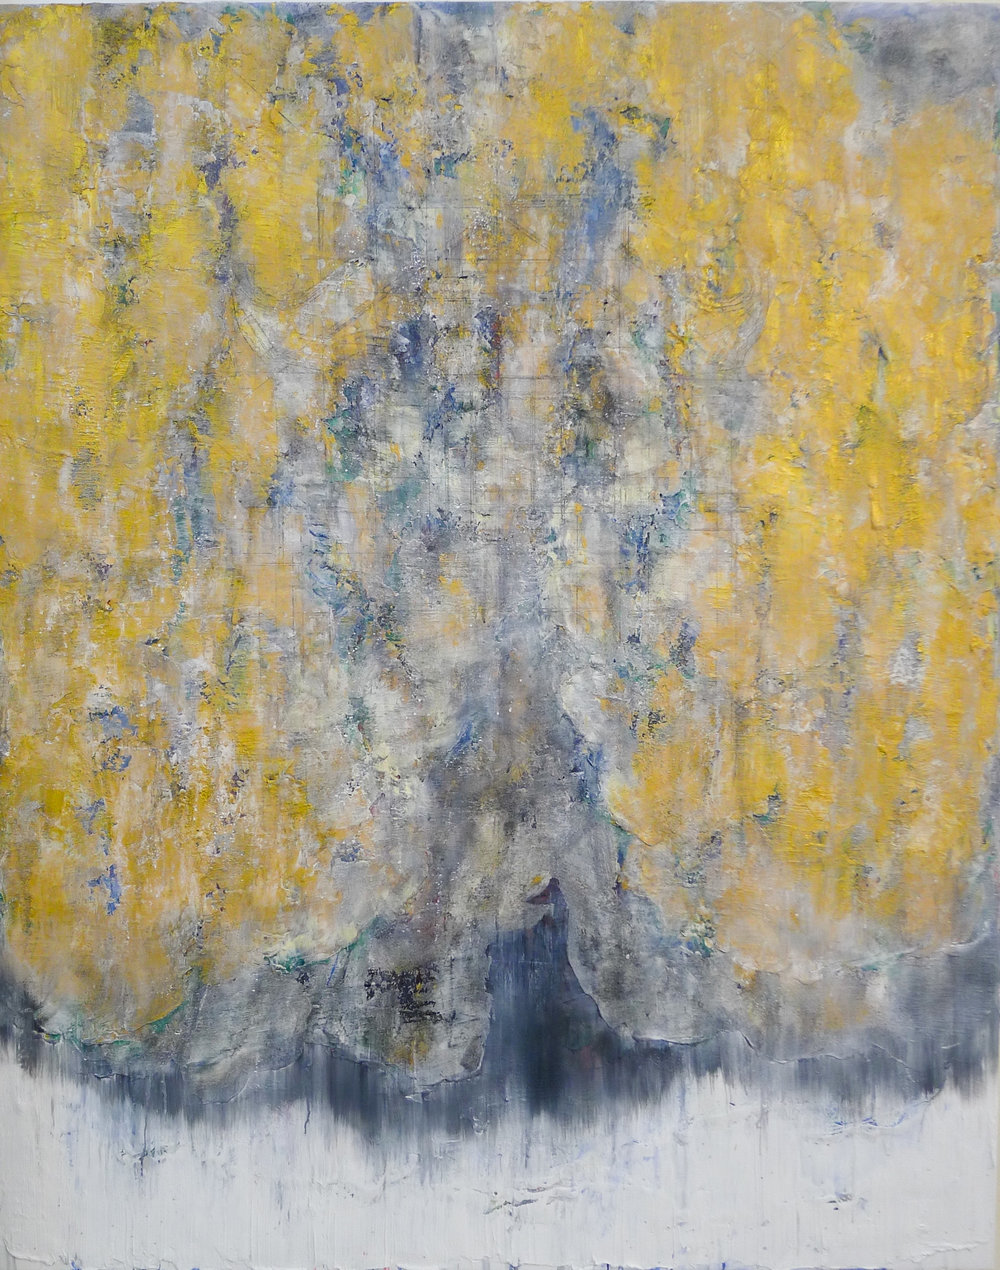 The Golden Light #3 , 2016, Oil, Acrylic, Acrylic Medium and Charcoal on Canvas, 150 x 110 cm